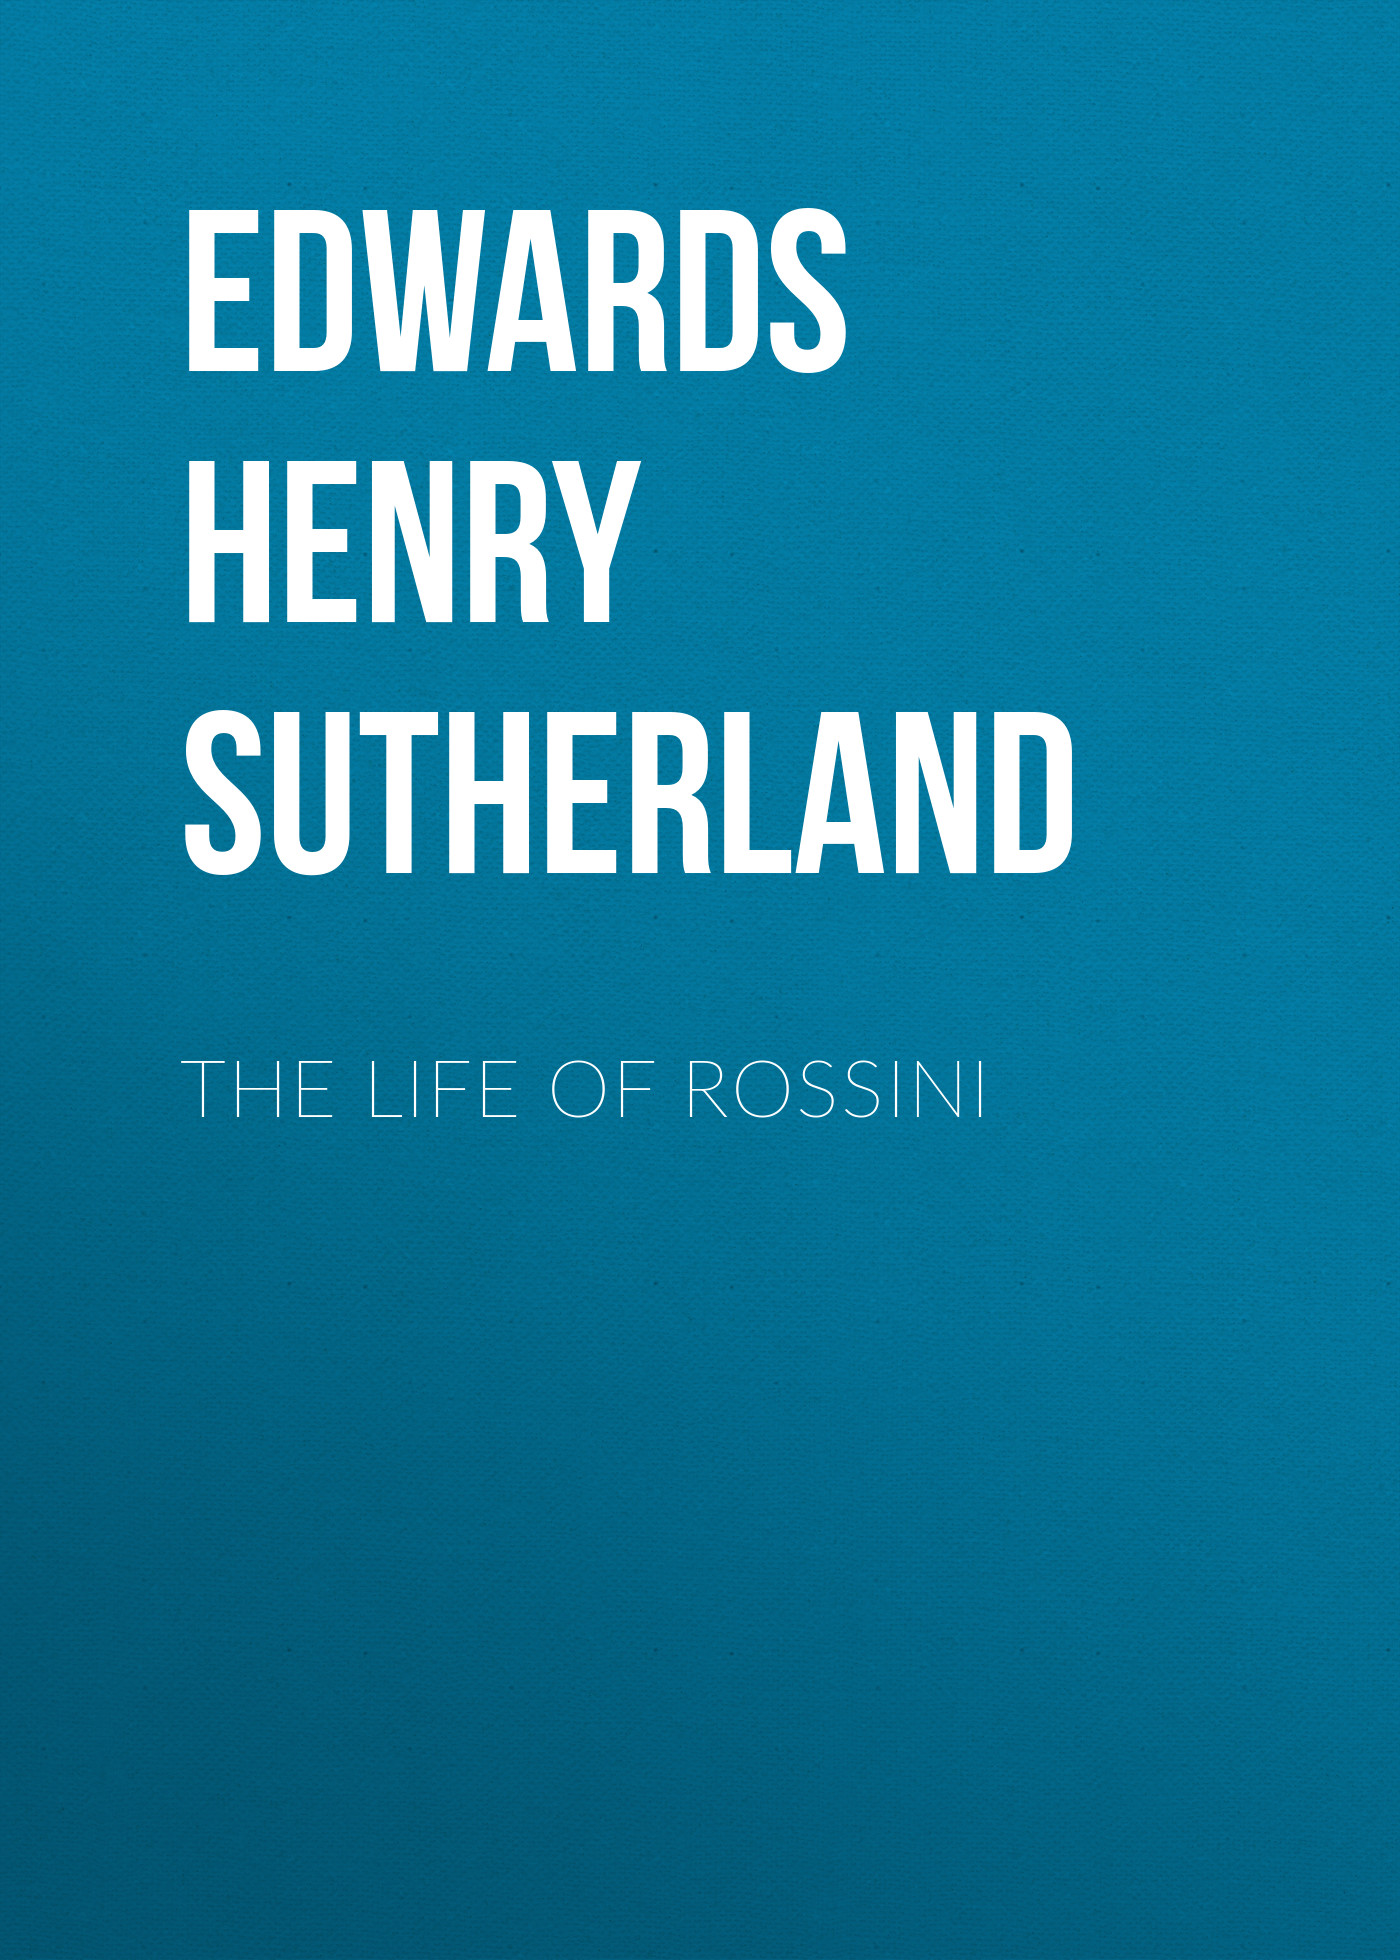 цены на Edwards Henry Sutherland The Life of Rossini